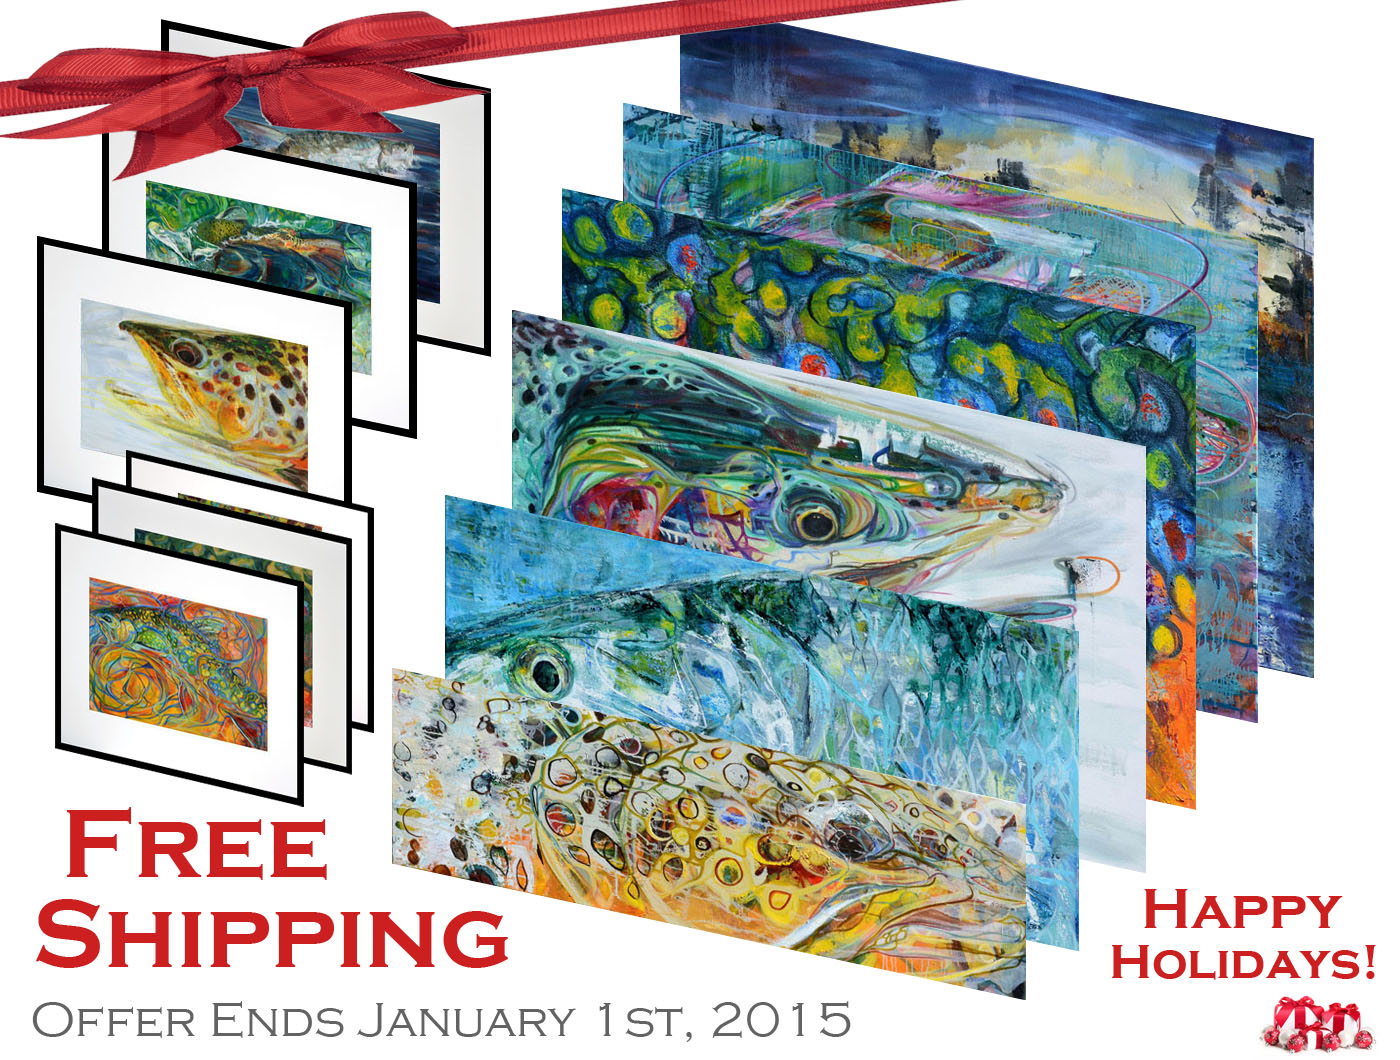 HAPPY HOLIDAYS - FREE SHIPPING!